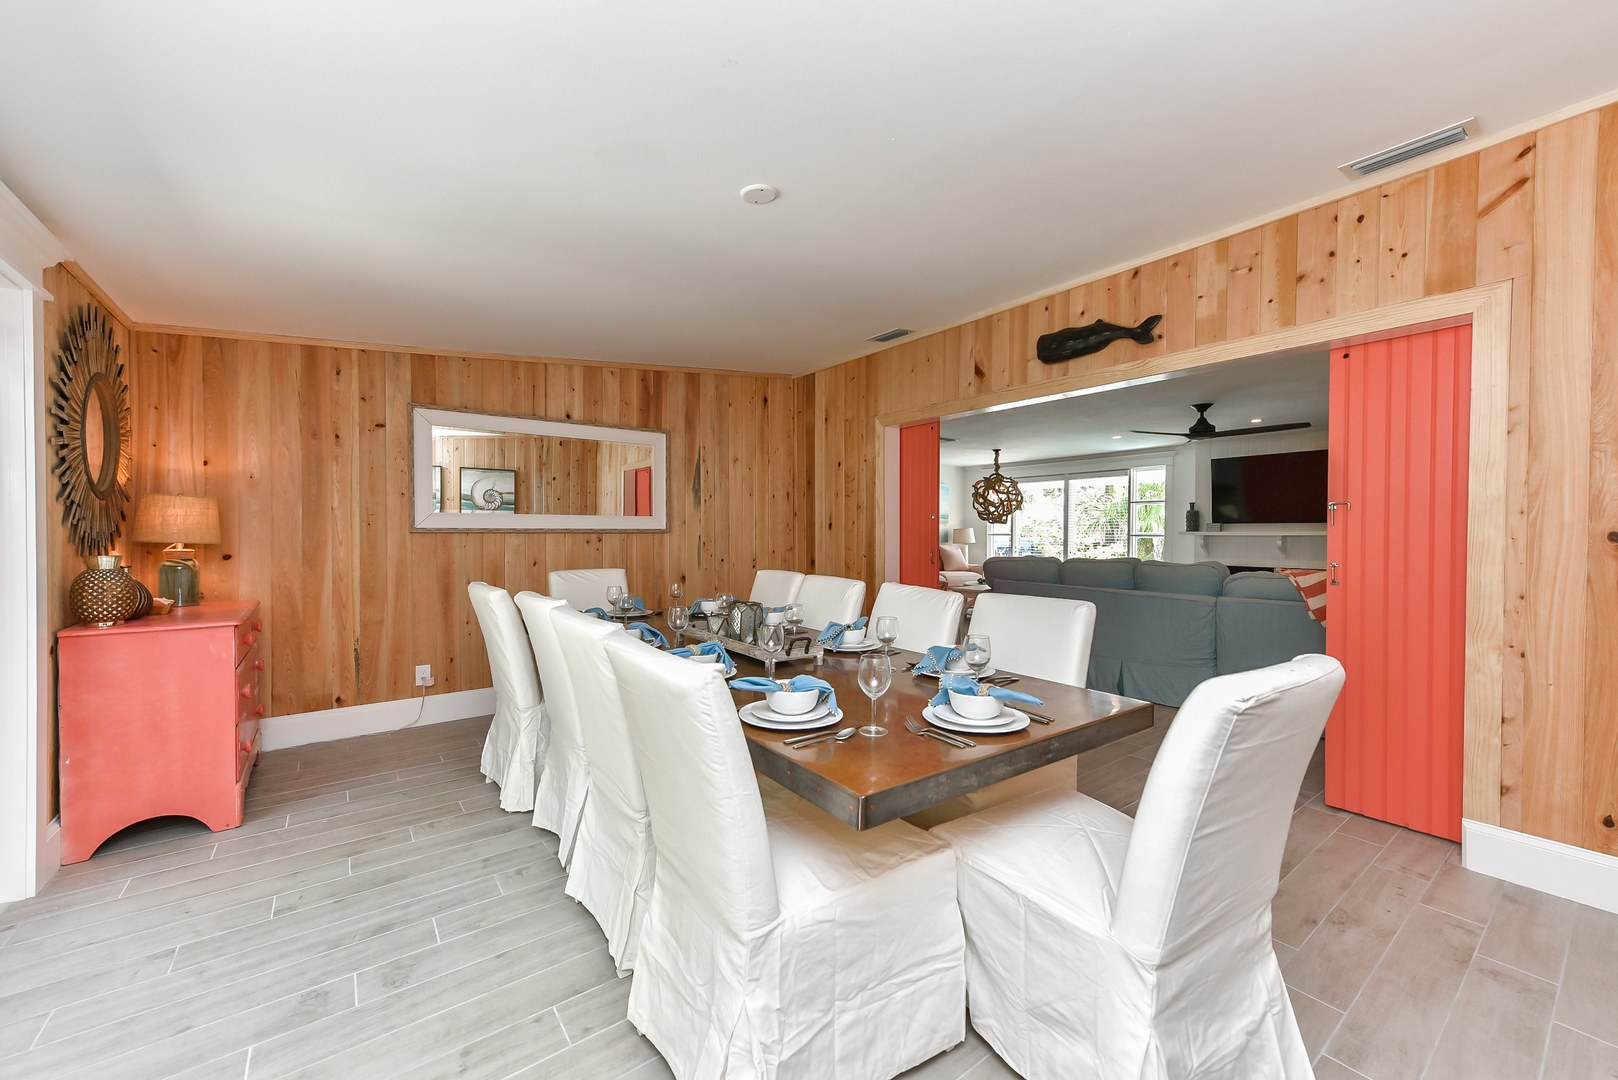 Example Photo - Dining Room - Seating for 8